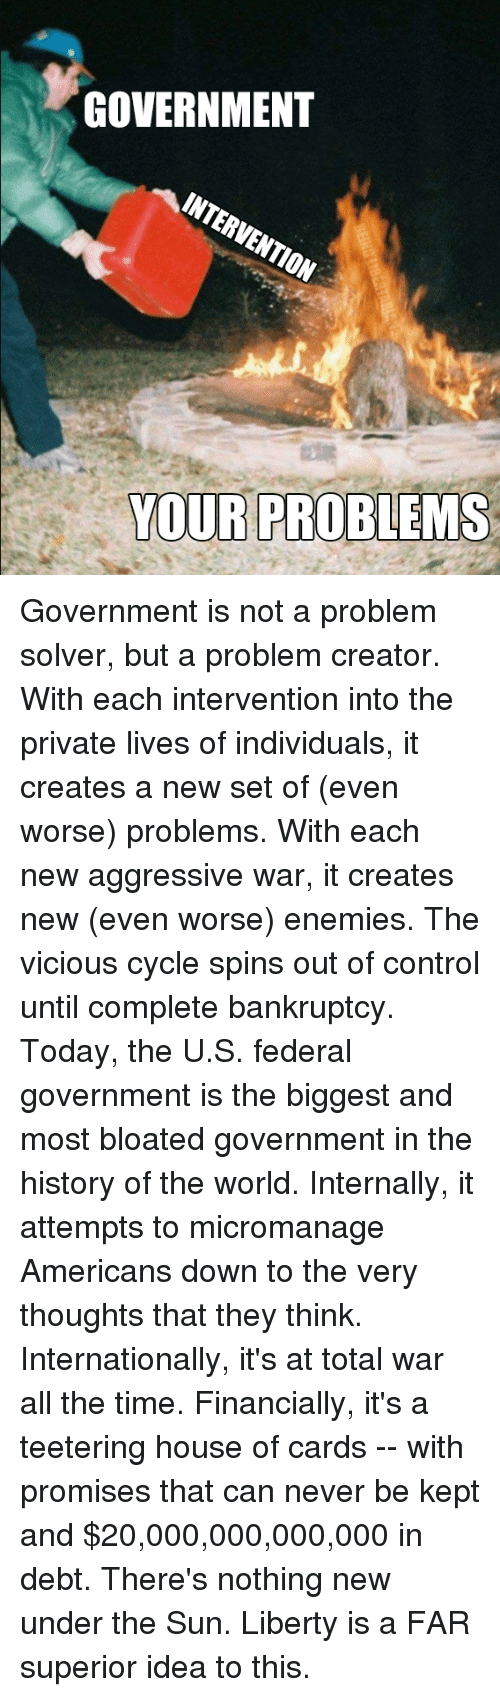 Vicious Cycle: GOVERNMENT  INTERVENTION  YOUR PROBLEMS Government is not a problem solver, but a problem creator.  With each intervention into the private lives of individuals, it creates a new set of (even worse) problems.  With each new aggressive war, it creates new (even worse) enemies.  The vicious cycle spins out of control until complete bankruptcy.  Today, the U.S. federal government is the biggest and most bloated government in the history of the world.   Internally, it attempts to micromanage Americans down to the very thoughts that they think.  Internationally, it's at total war all the time.  Financially, it's a teetering house of cards --  with promises that can never be kept and $20,000,000,000,000 in debt.  There's nothing new under the Sun.  Liberty is a FAR superior idea to this.